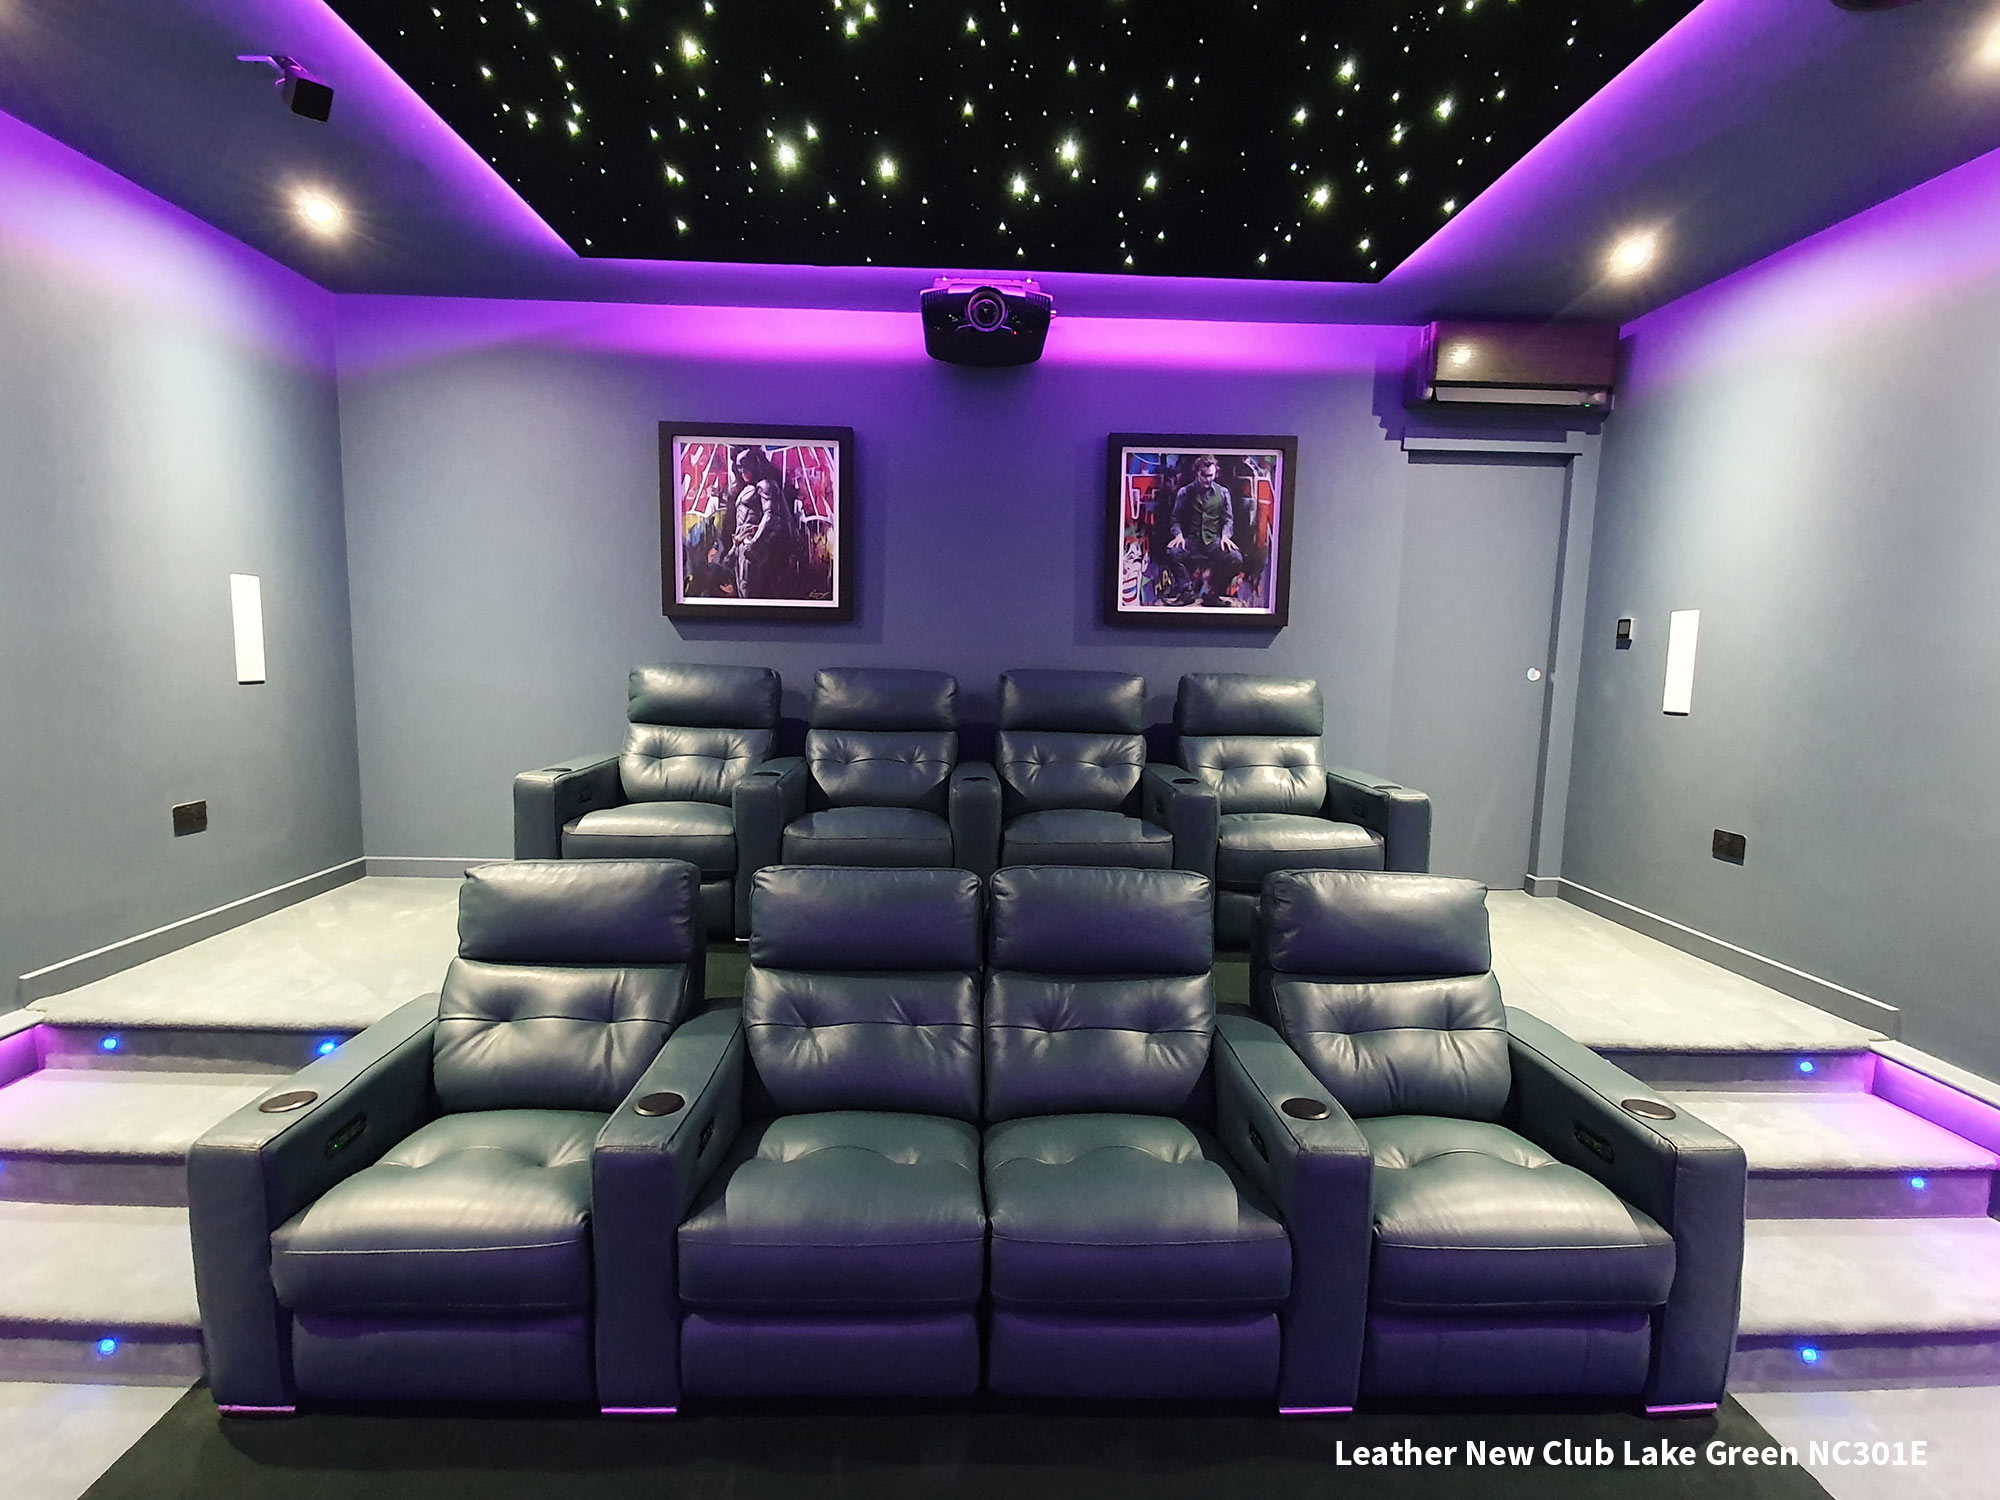 FrontRow™ Serenity Home Cinema Seating installation